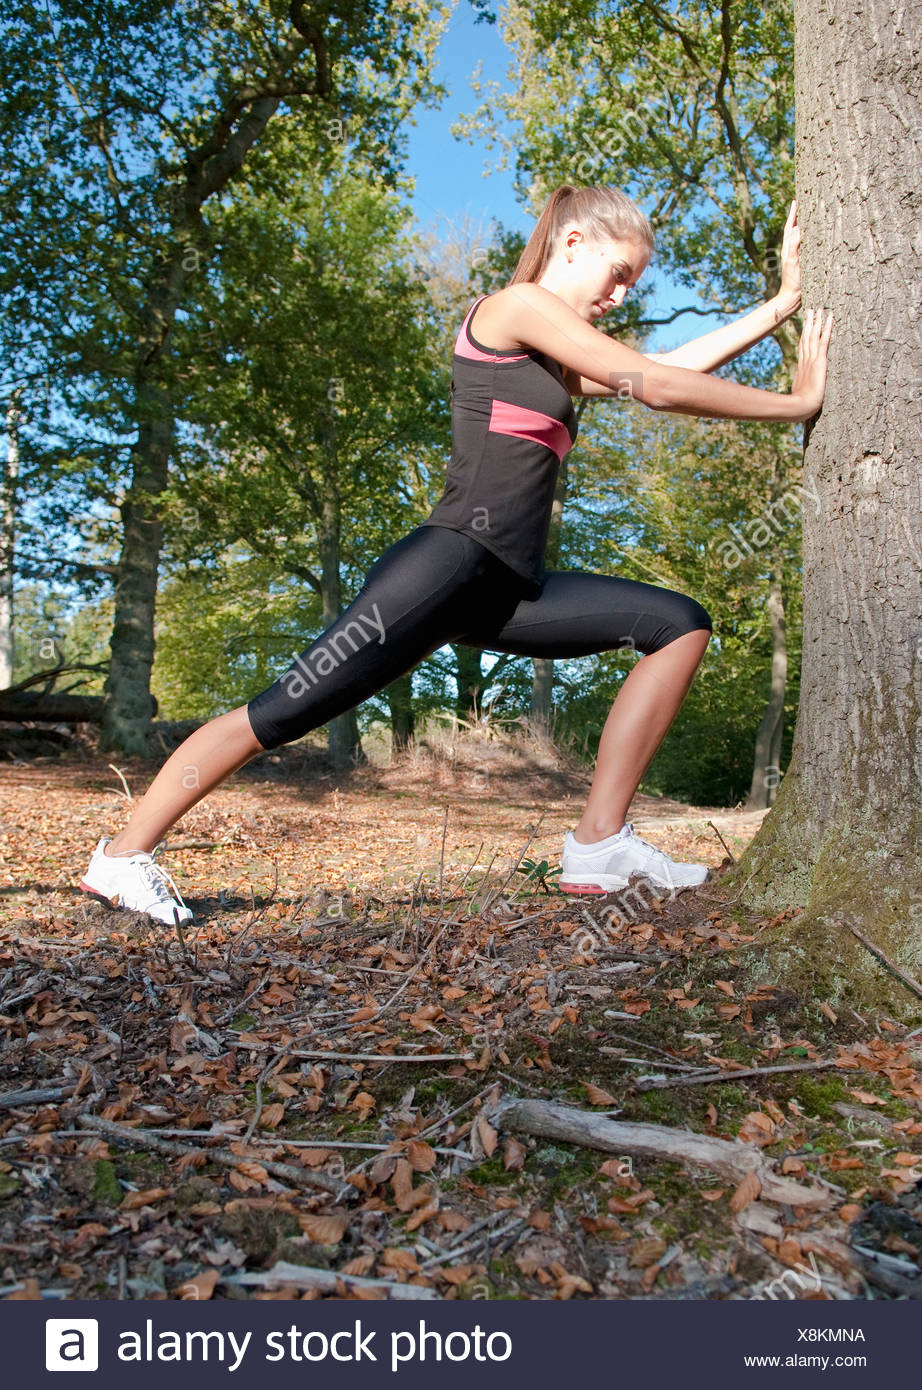 Runner stretching against tree in park - Stock Image